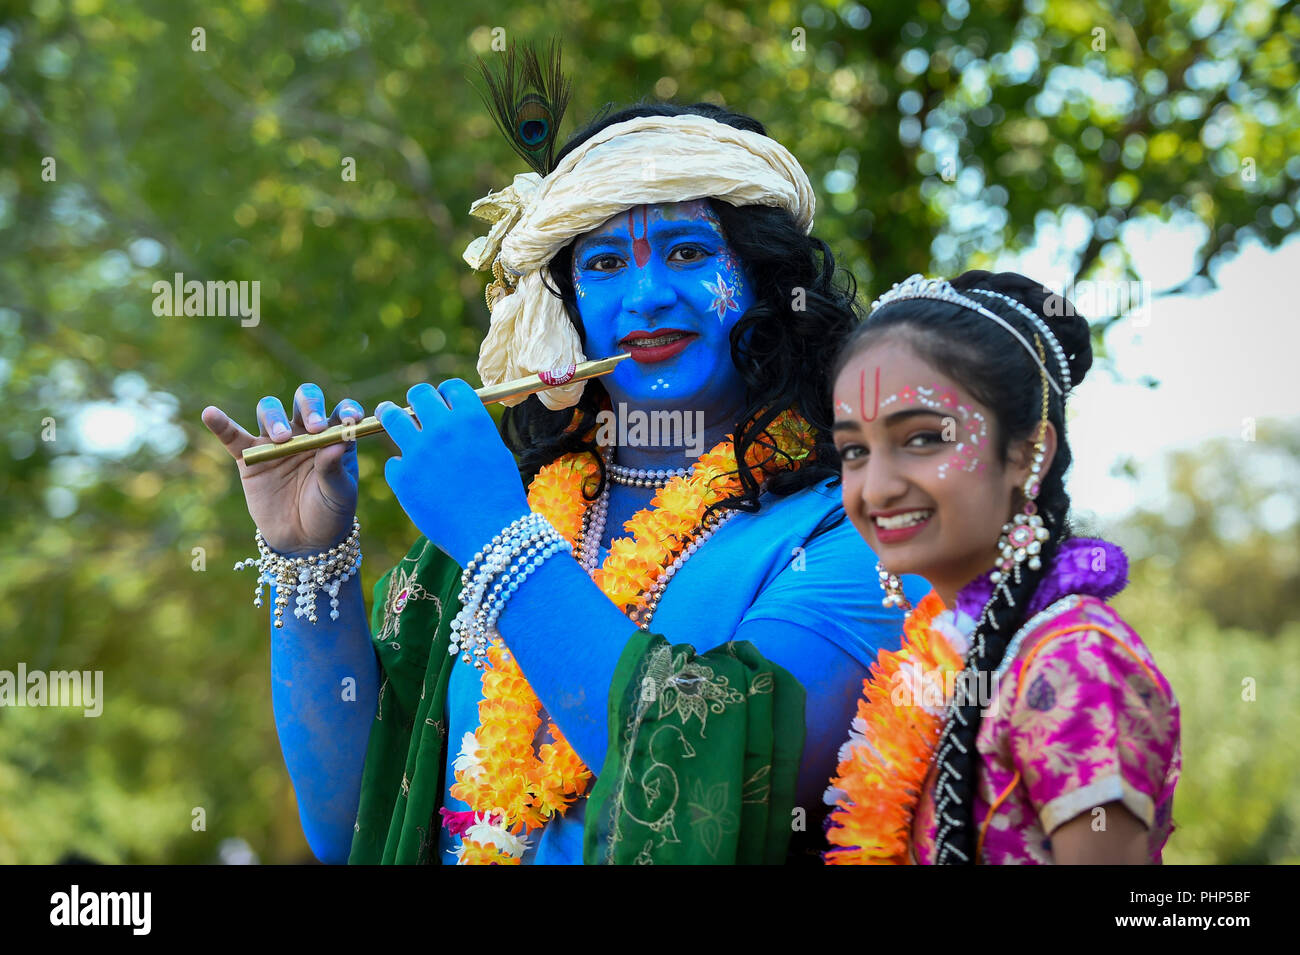 Watford, UK. 2 September 2018. (L to R) Kushal and Shivanee, students at Avanti School in Stanmore, dress as Lord Krishna and his consort Radharani, as thousands of devotees attend the biggest Janmashtami festival outside of India at the Bhaktivedanta Manor Hare Krishna Temple in Watford, Hertfordshire.  The event celebrates the birth of Lord Krishna and take place at a property donated to the Hare Krishna movement by ex Beatle George Harrison.  Credit: Stephen Chung / Alamy Live News - Stock Image